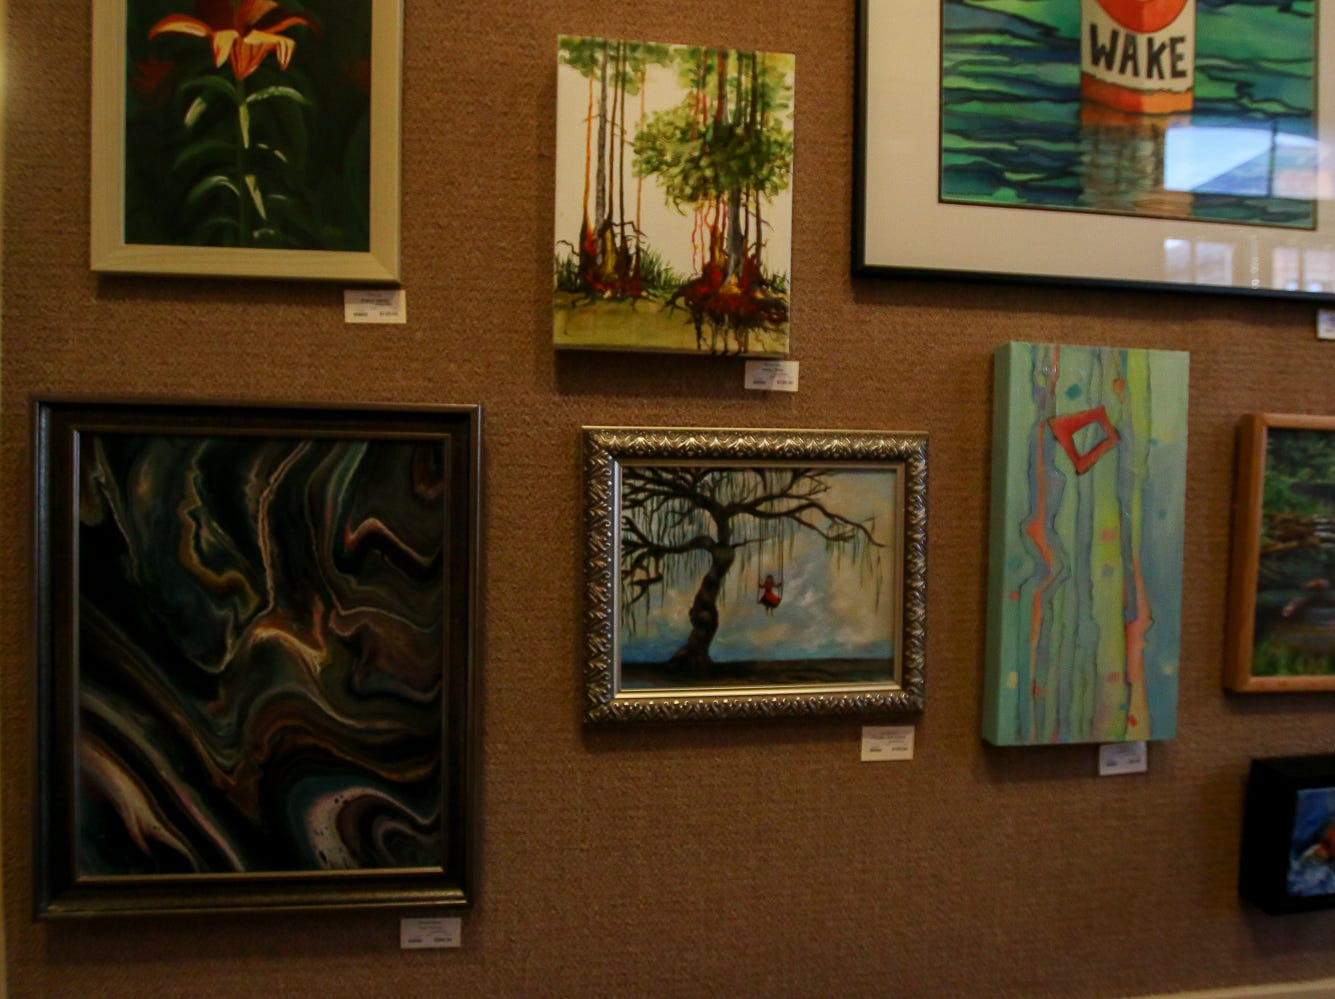 Some of the pieces on display at Quayside Art Gallery during Gallery Night on Friday, October 19, 2018.